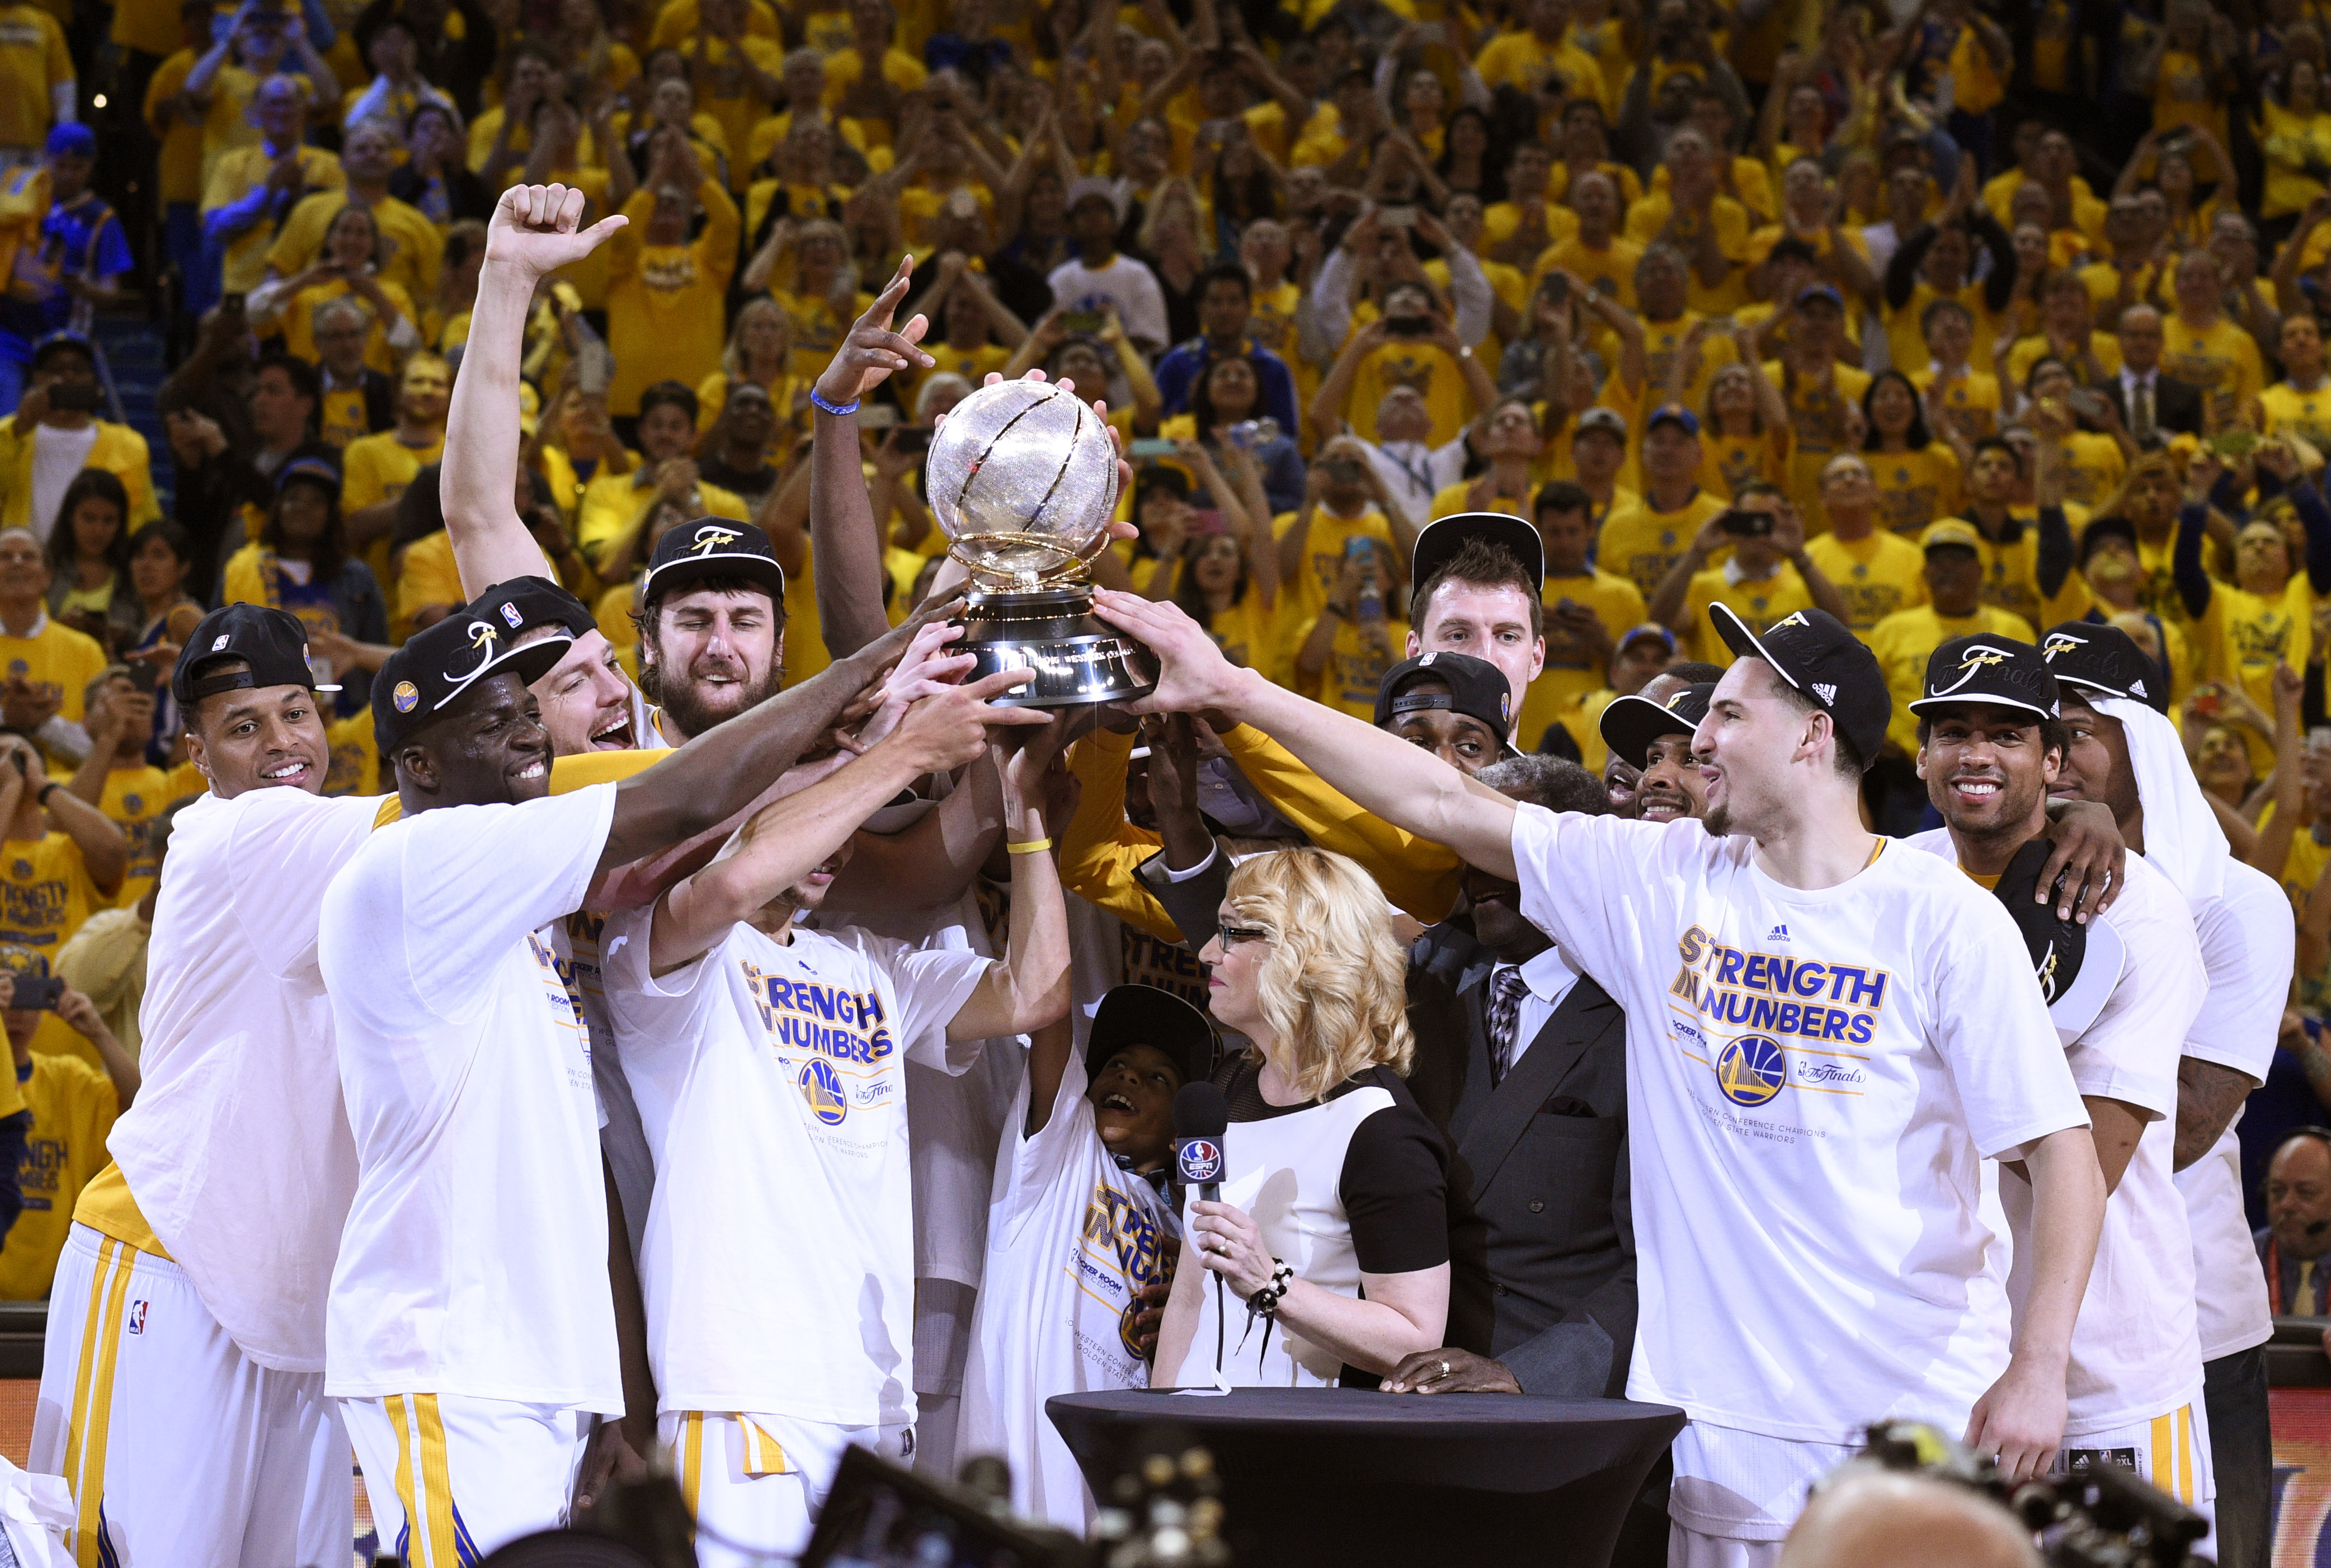 The 2015 Western Conference Champions